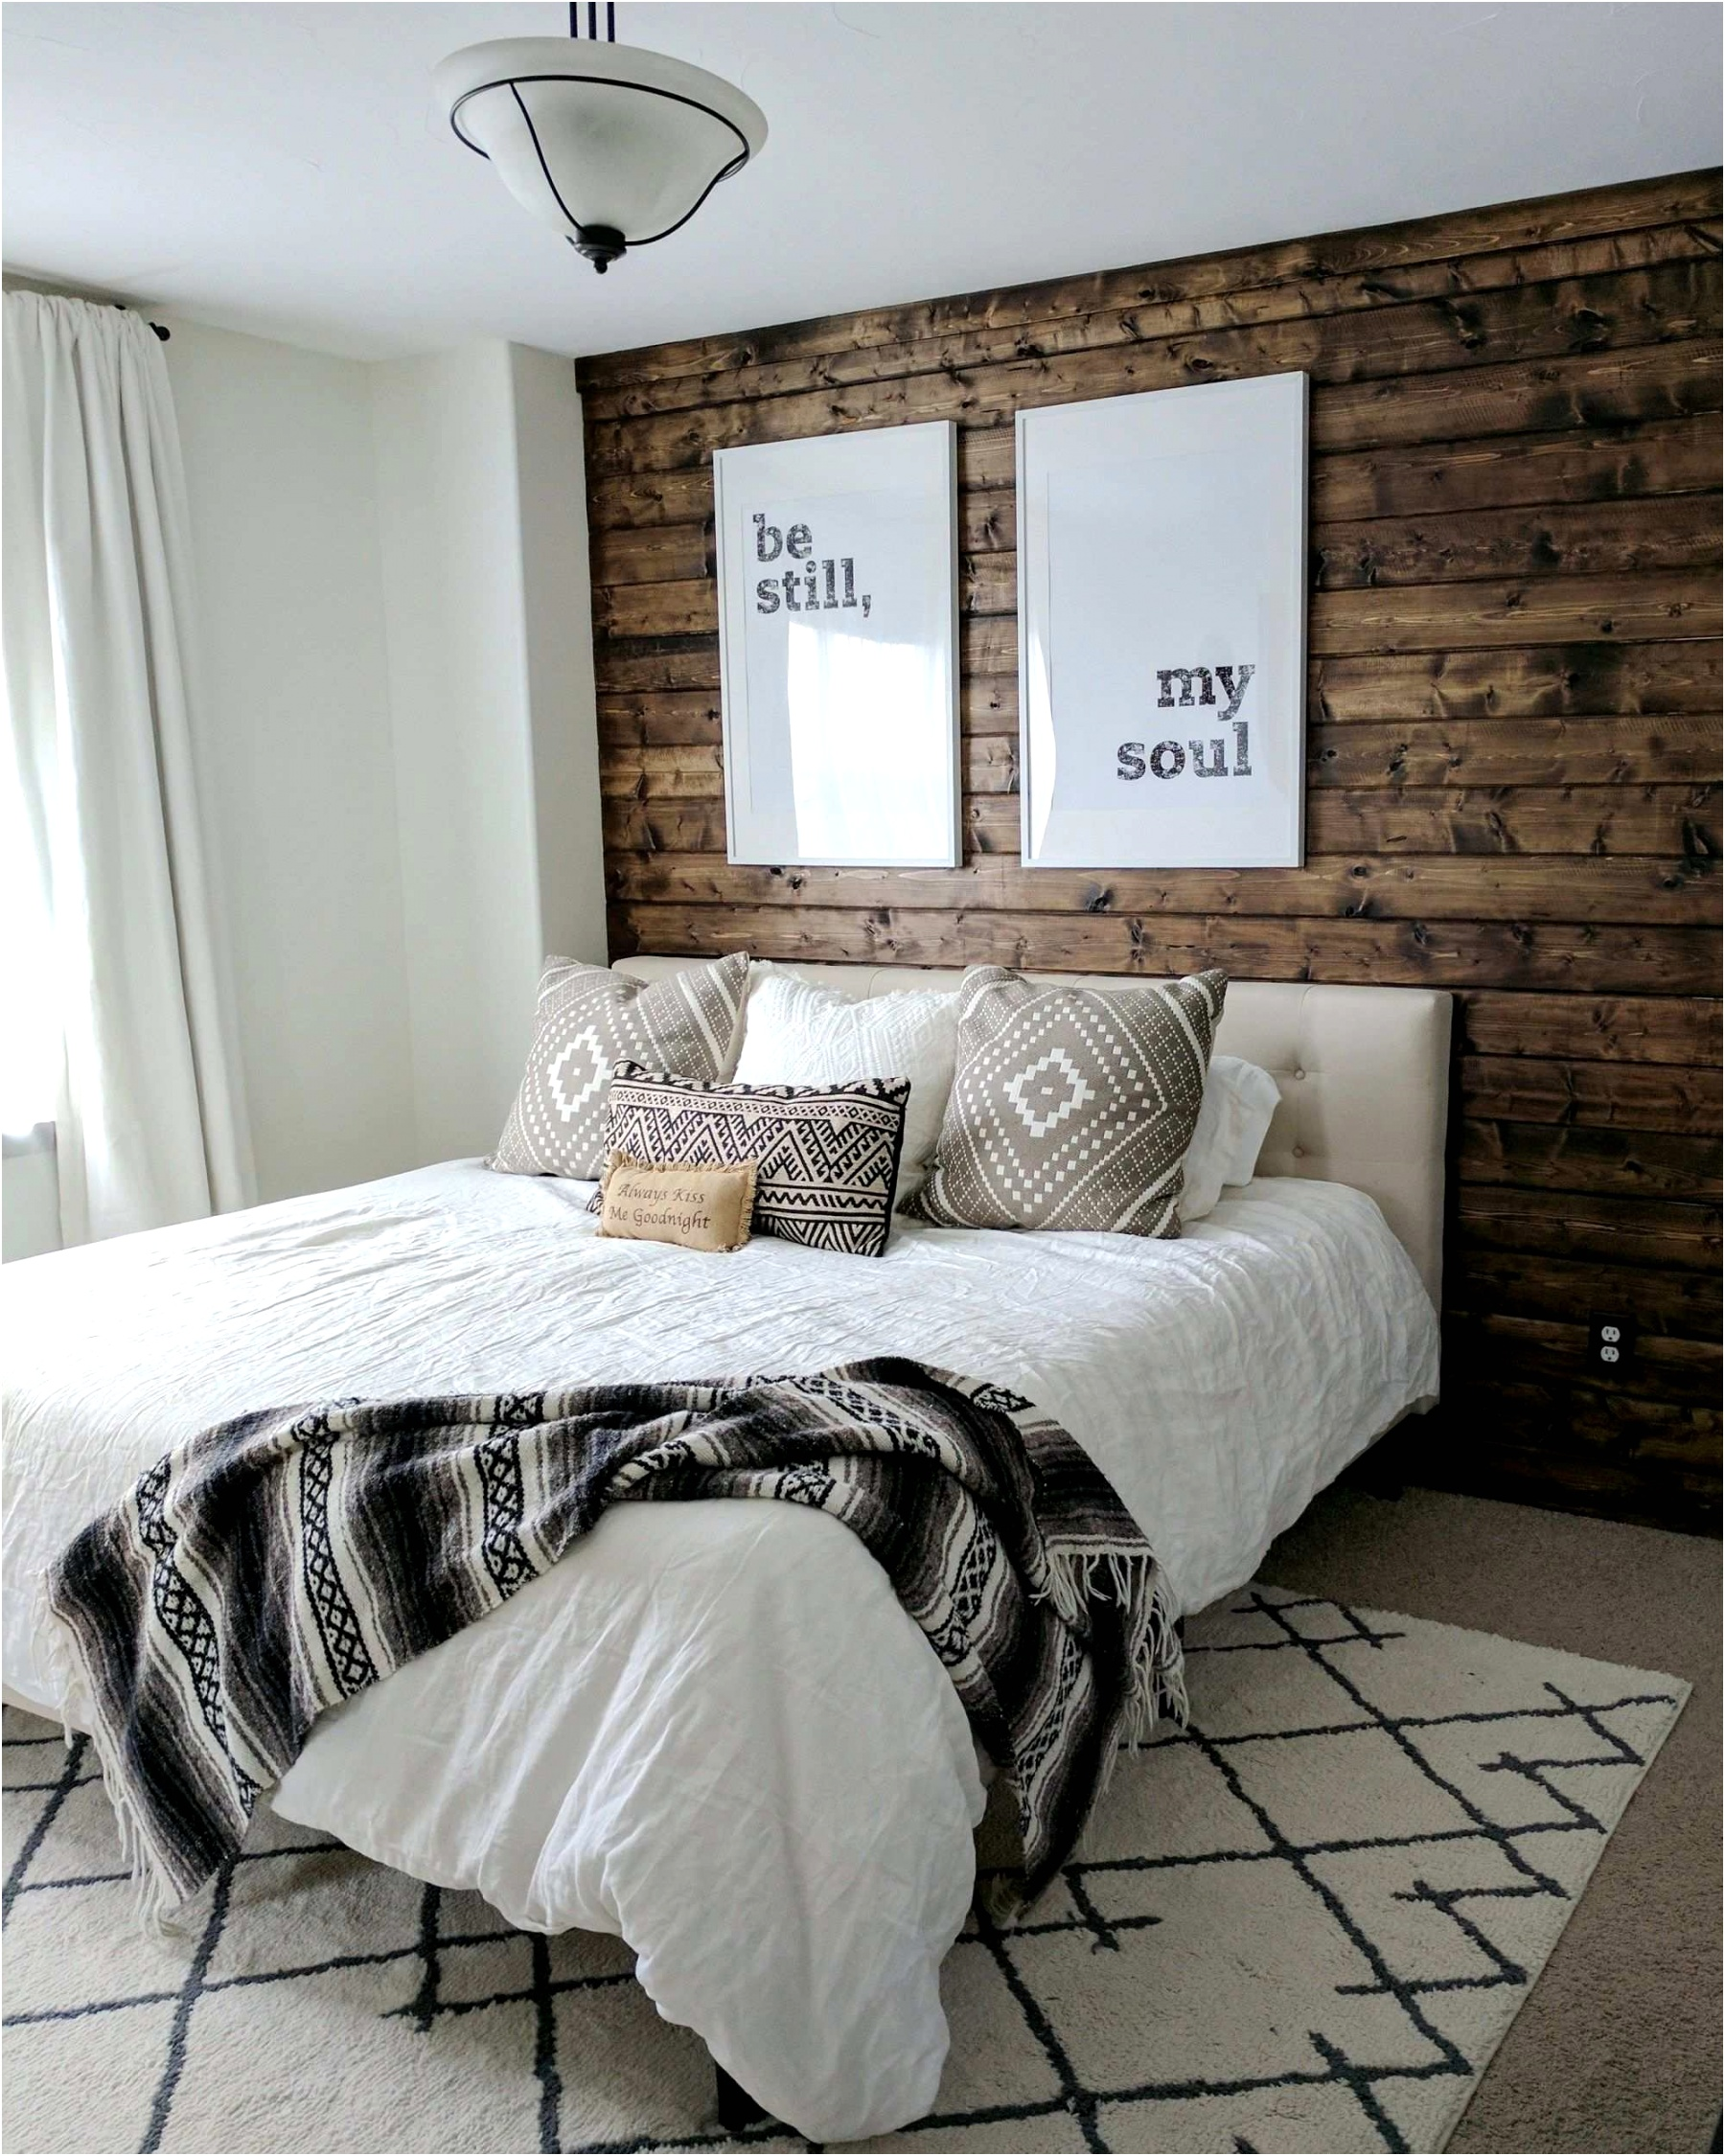 Remarkable Wall Paint Ideas Bedrooms Wood how to build a wood plank accent wall accent wall Wood Wall Paint Bedrooms Remarkable Ideas